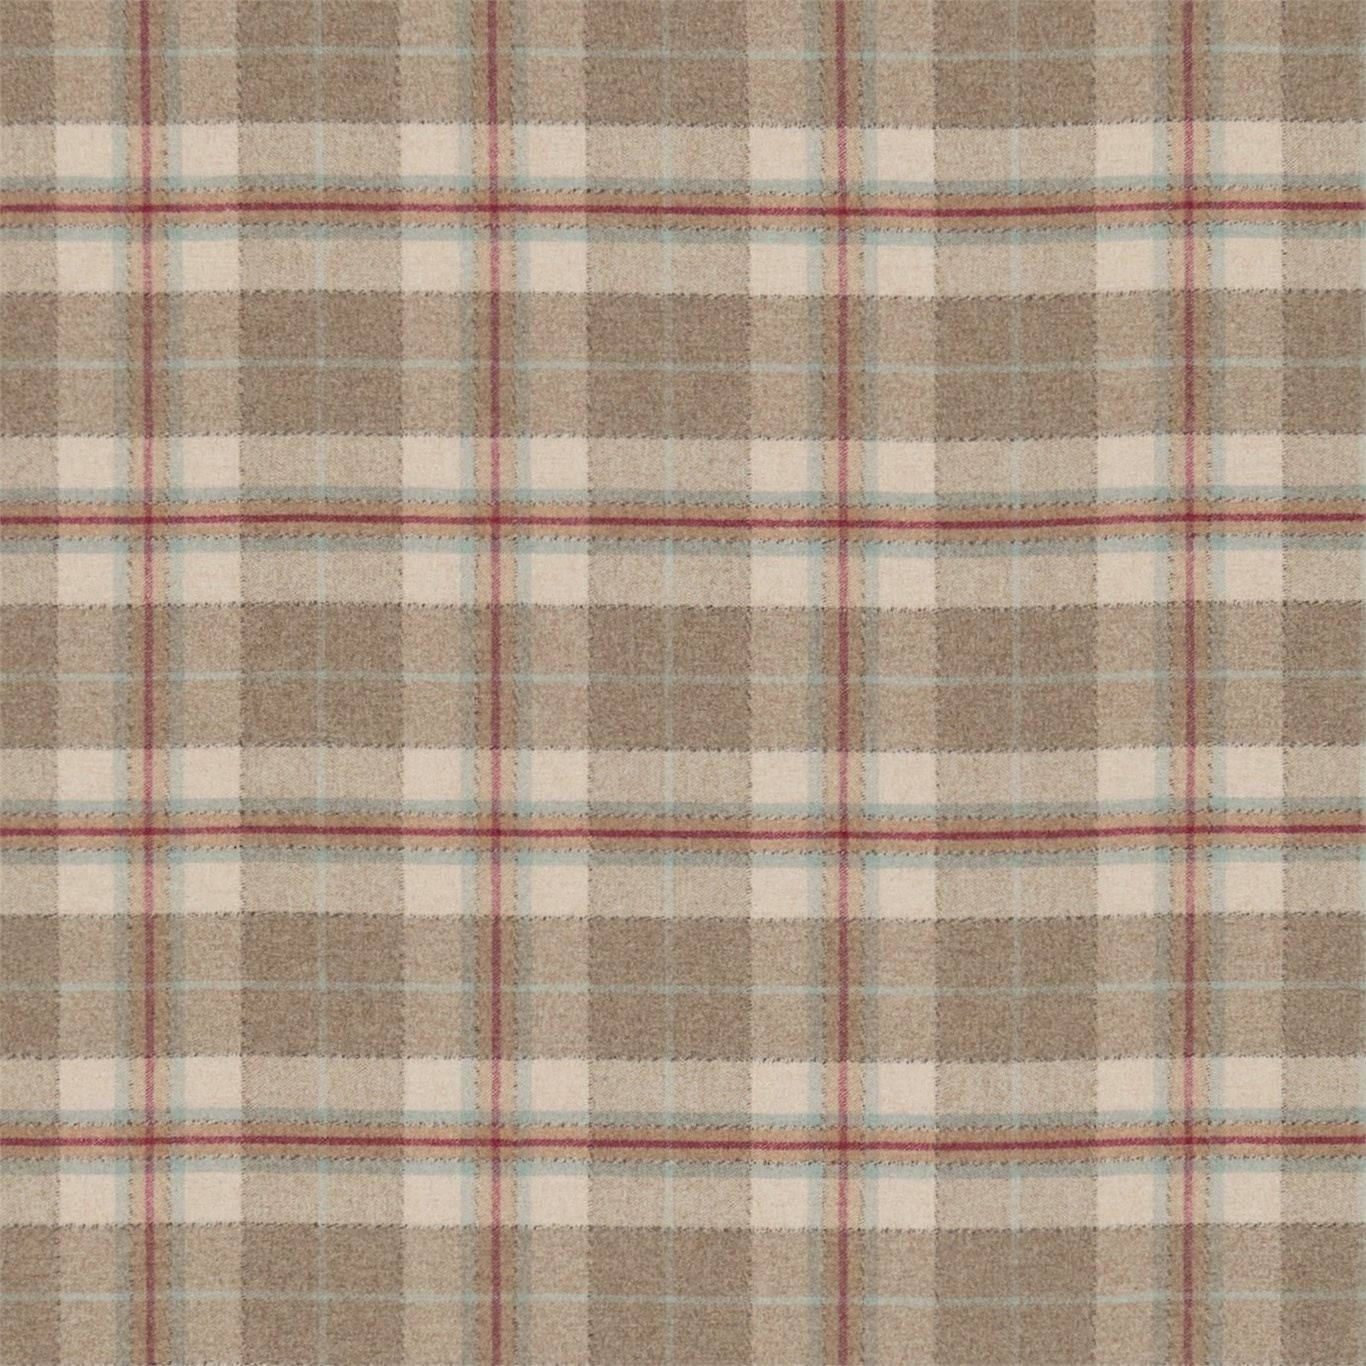 Image of Sanderson Milton Cherry/Biscuit Fabric 233250